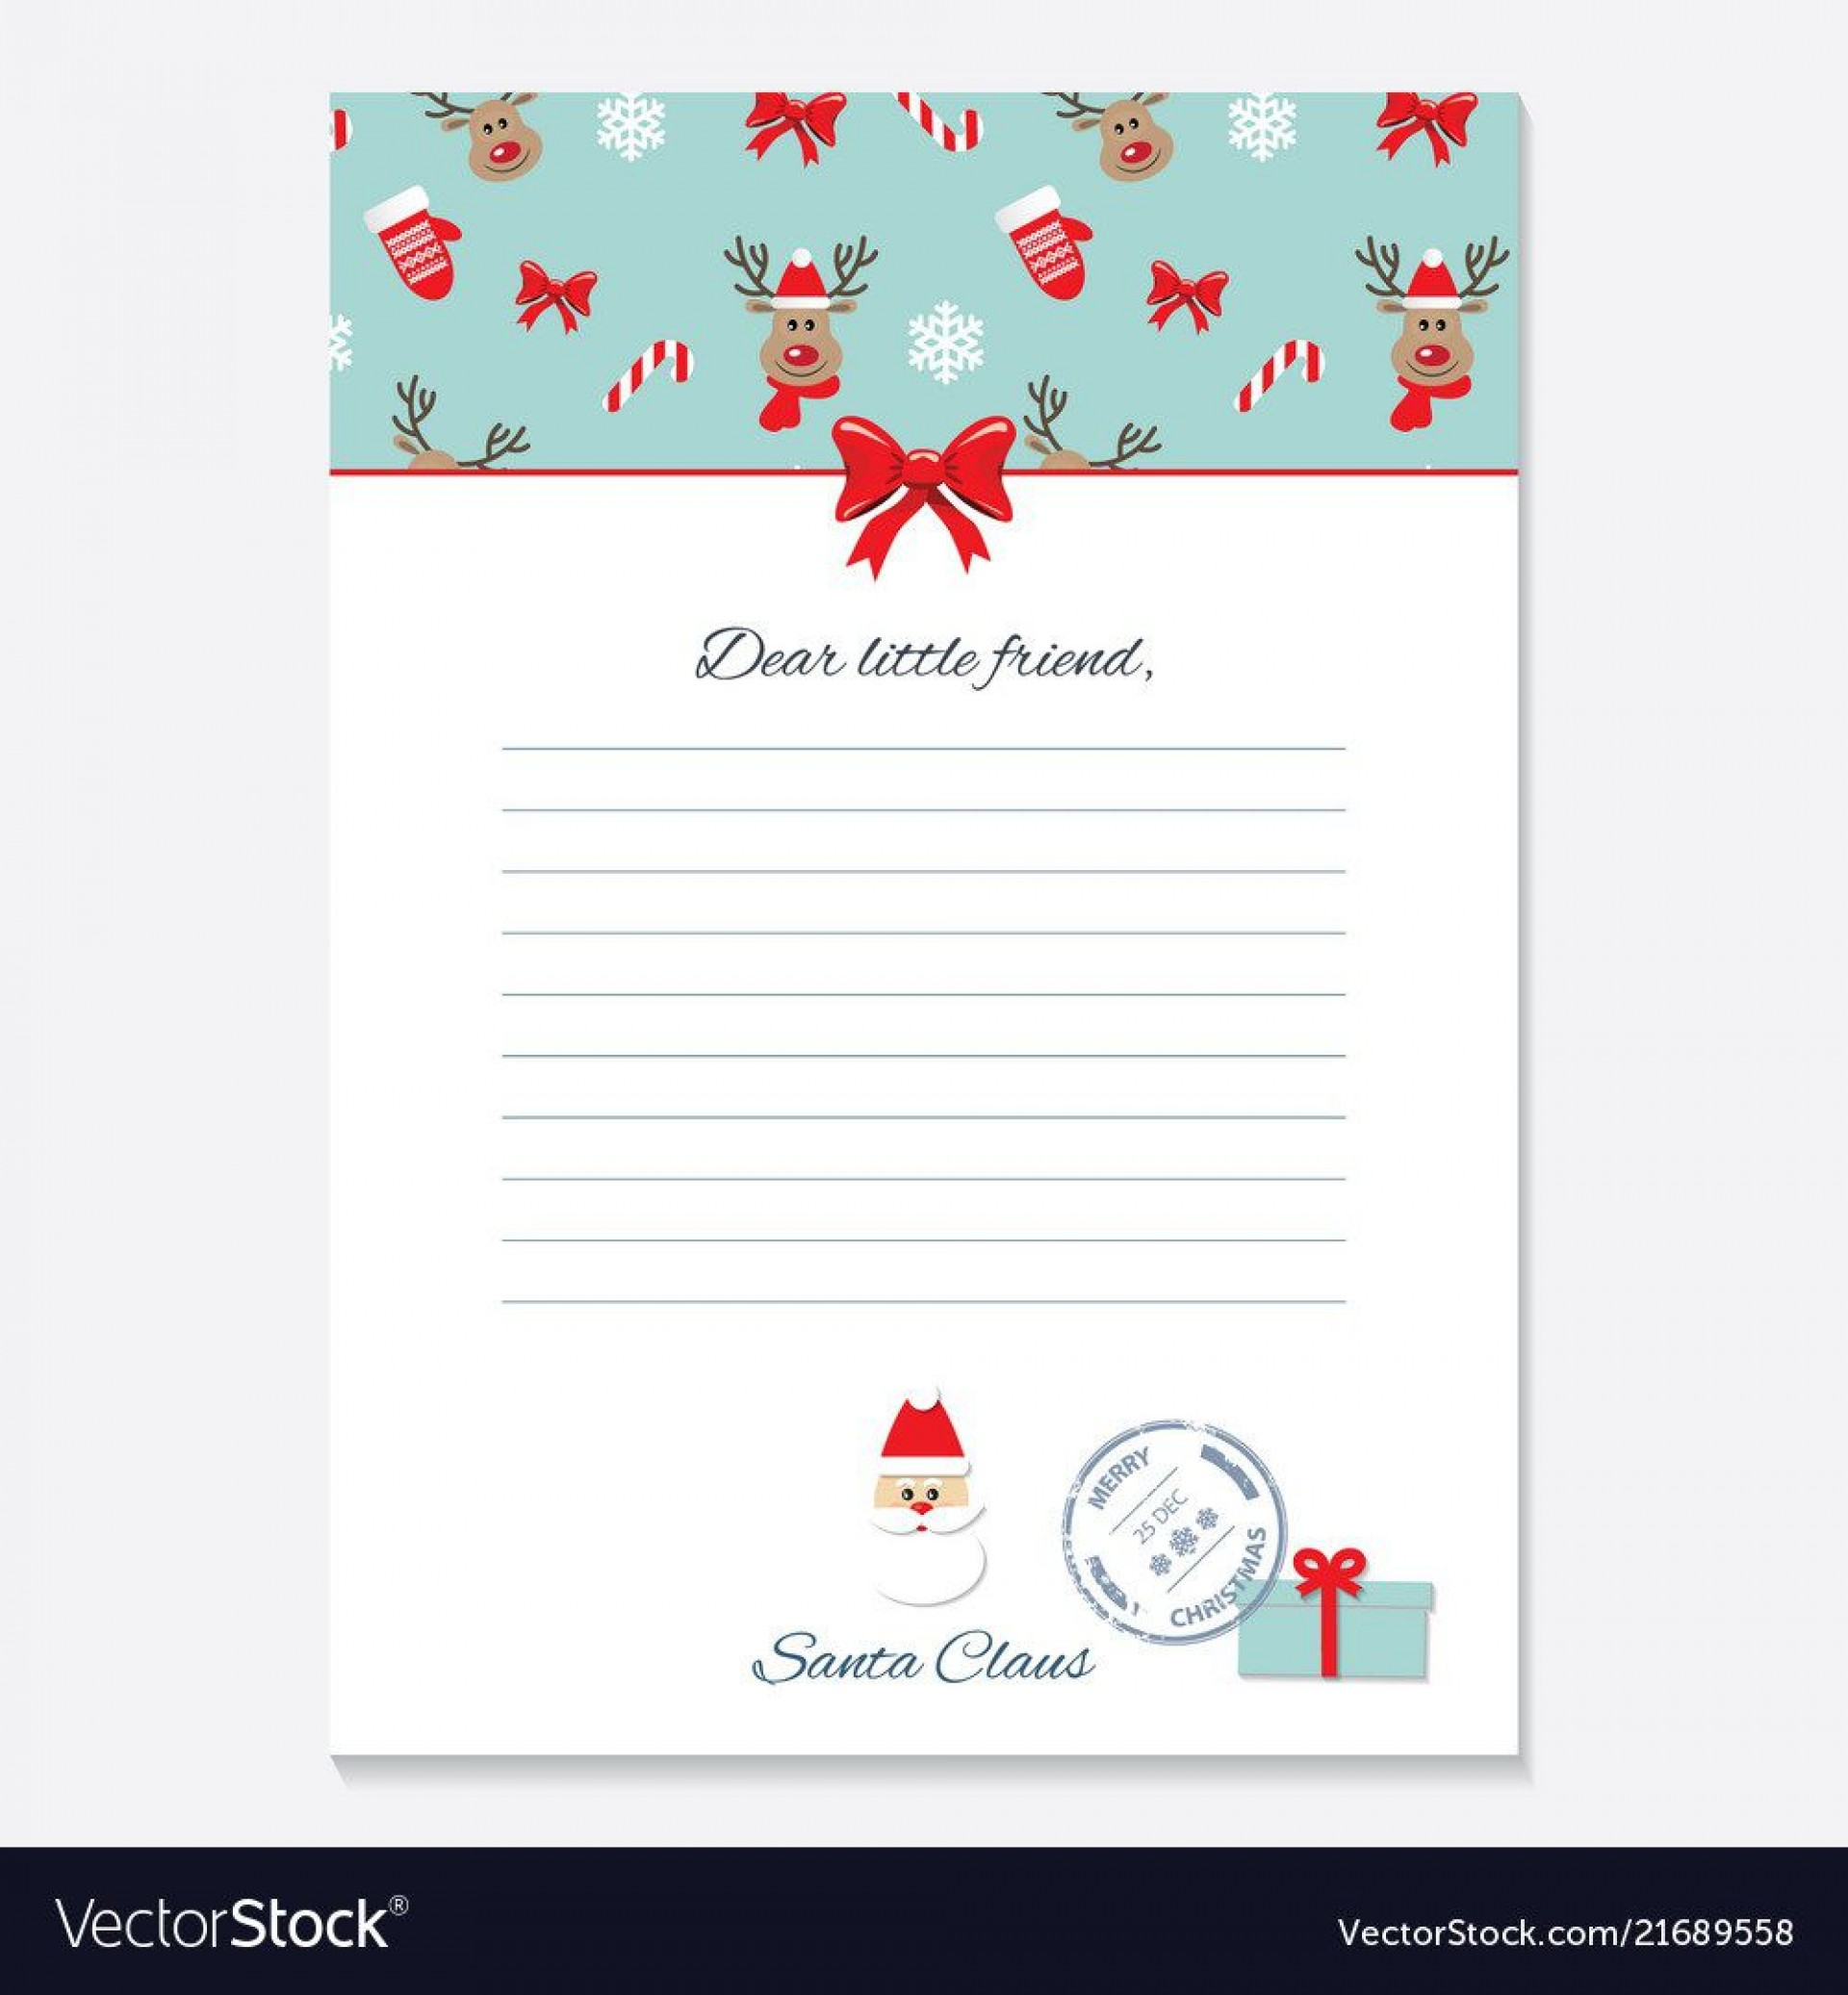 005 Frightening Letter From Santa Template High Def  Free Printable Word Doc Uk1920